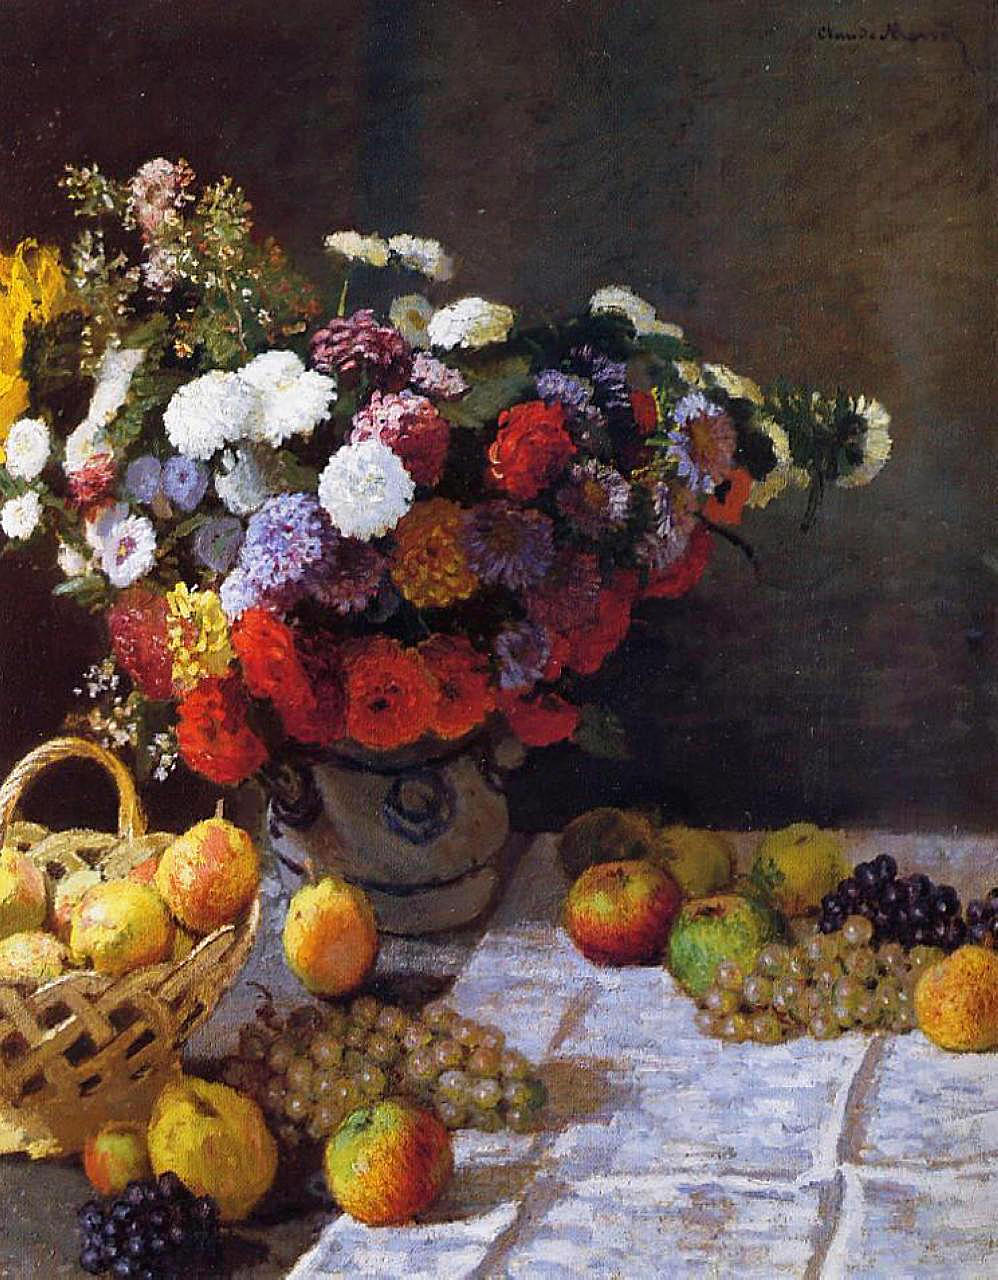 Claude Monet - Flowers and Fruit 1869